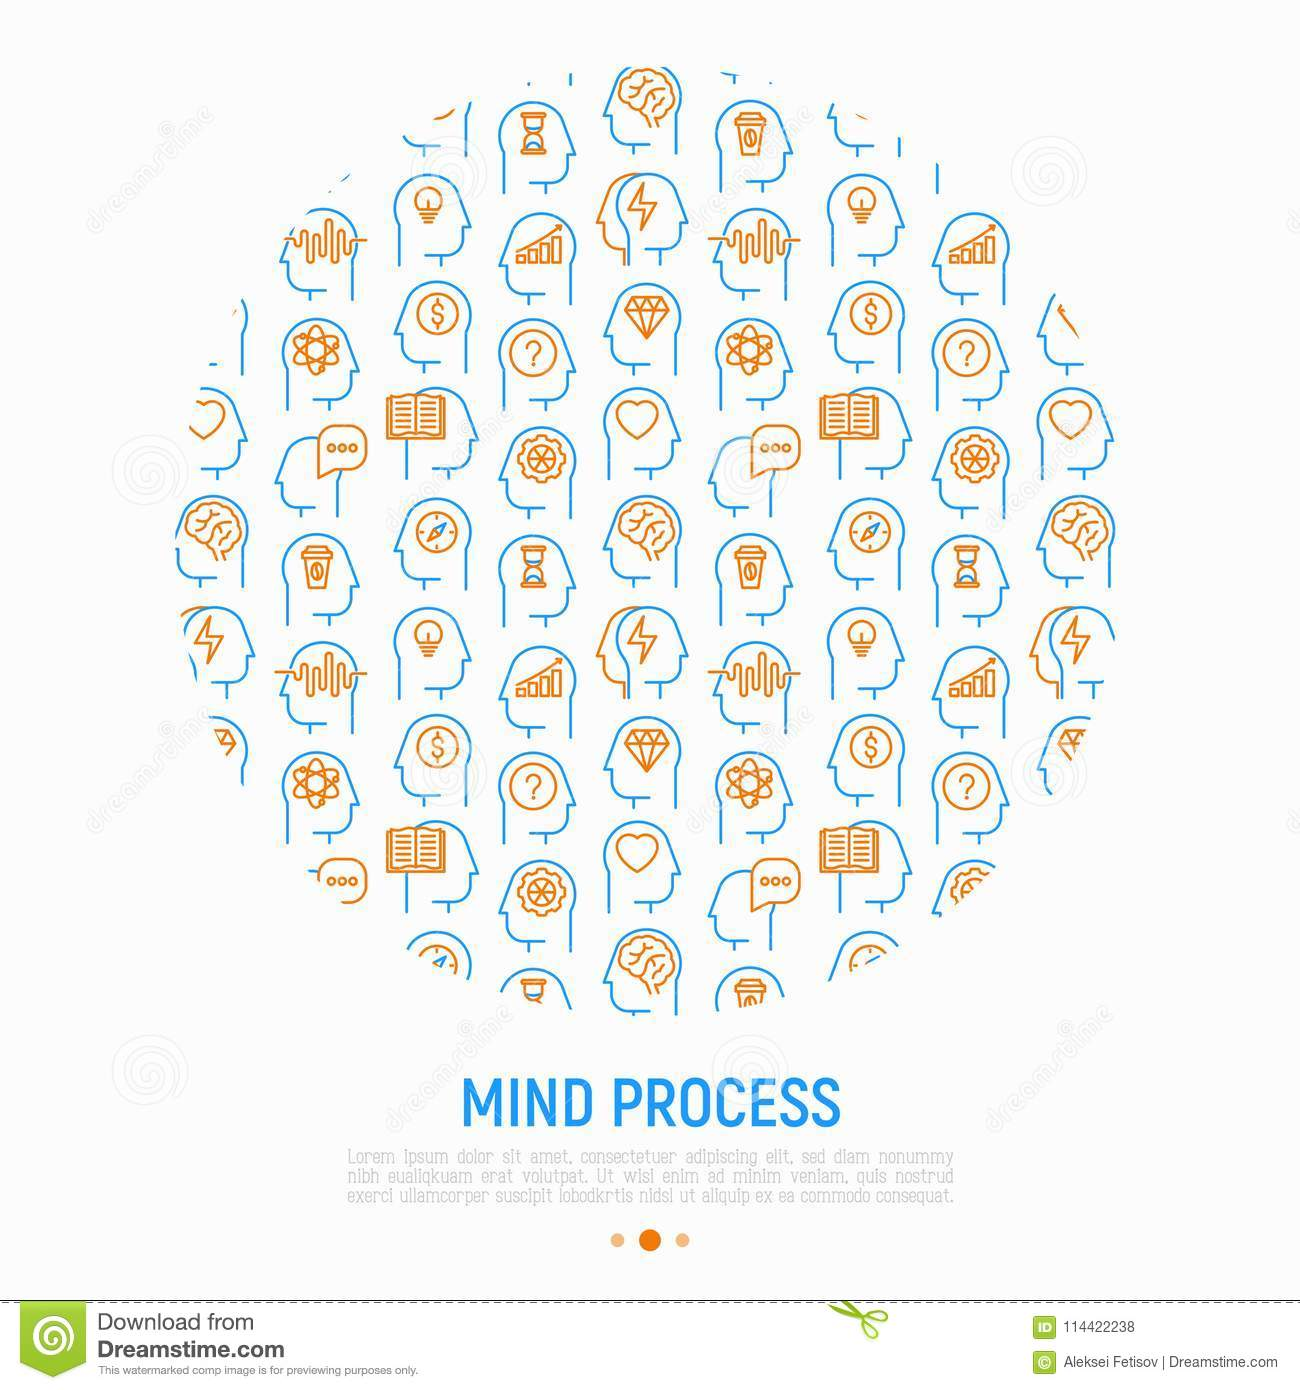 Mind process concept in circle